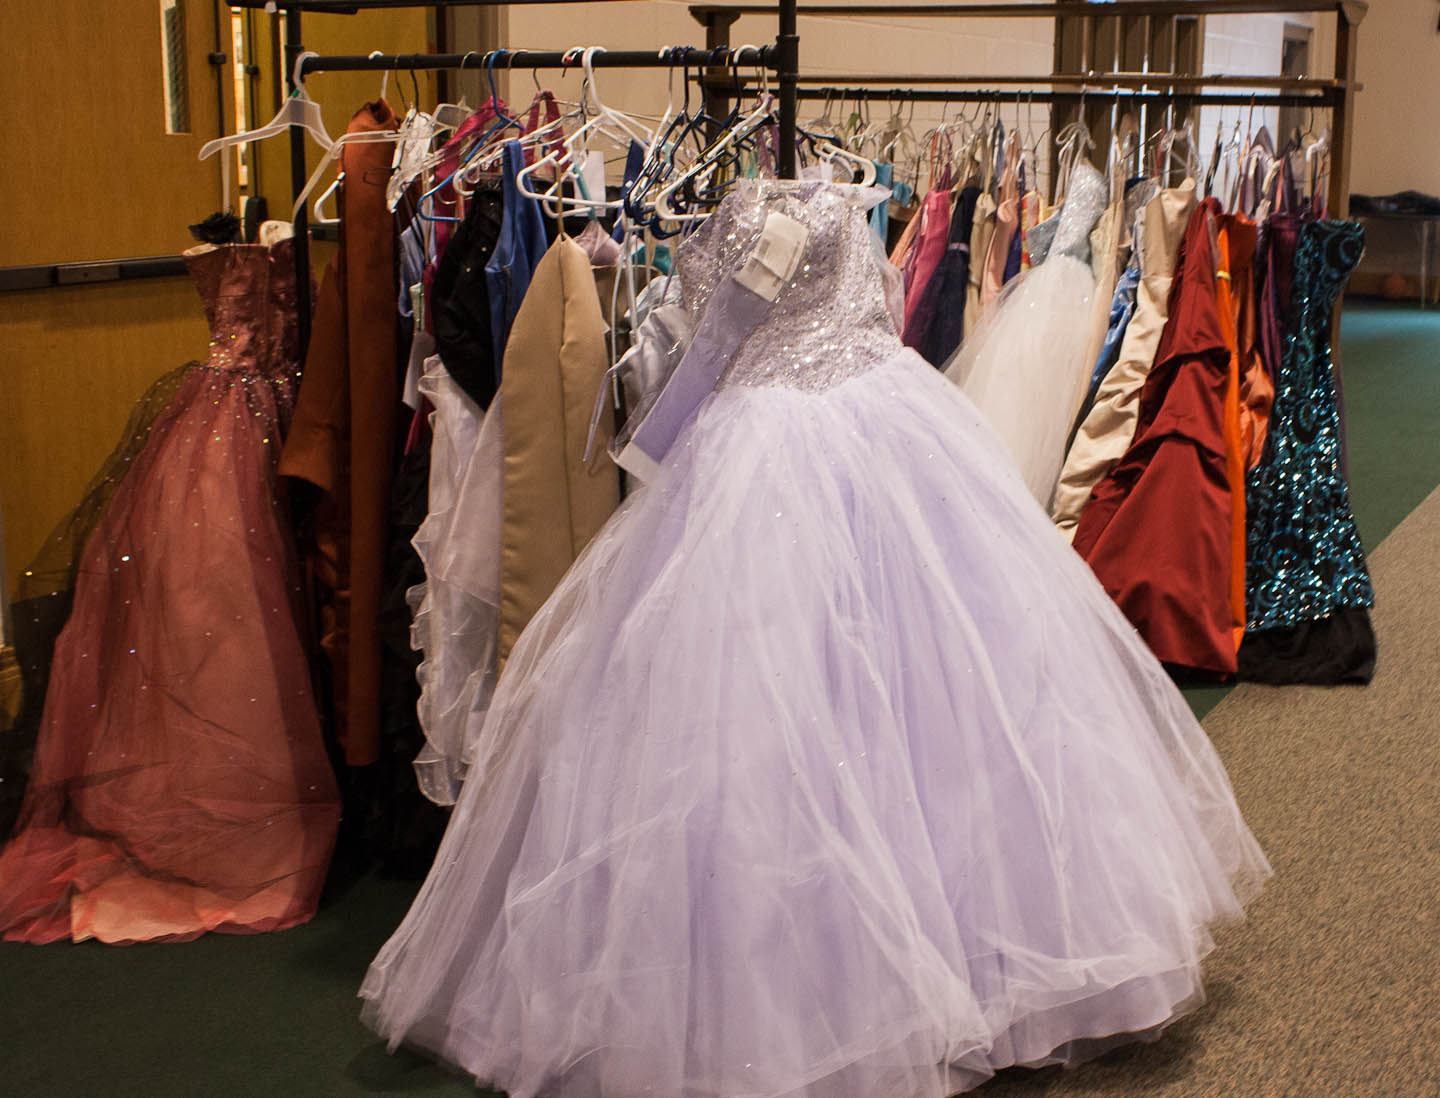 Consignment Prom Dresses Des Moines